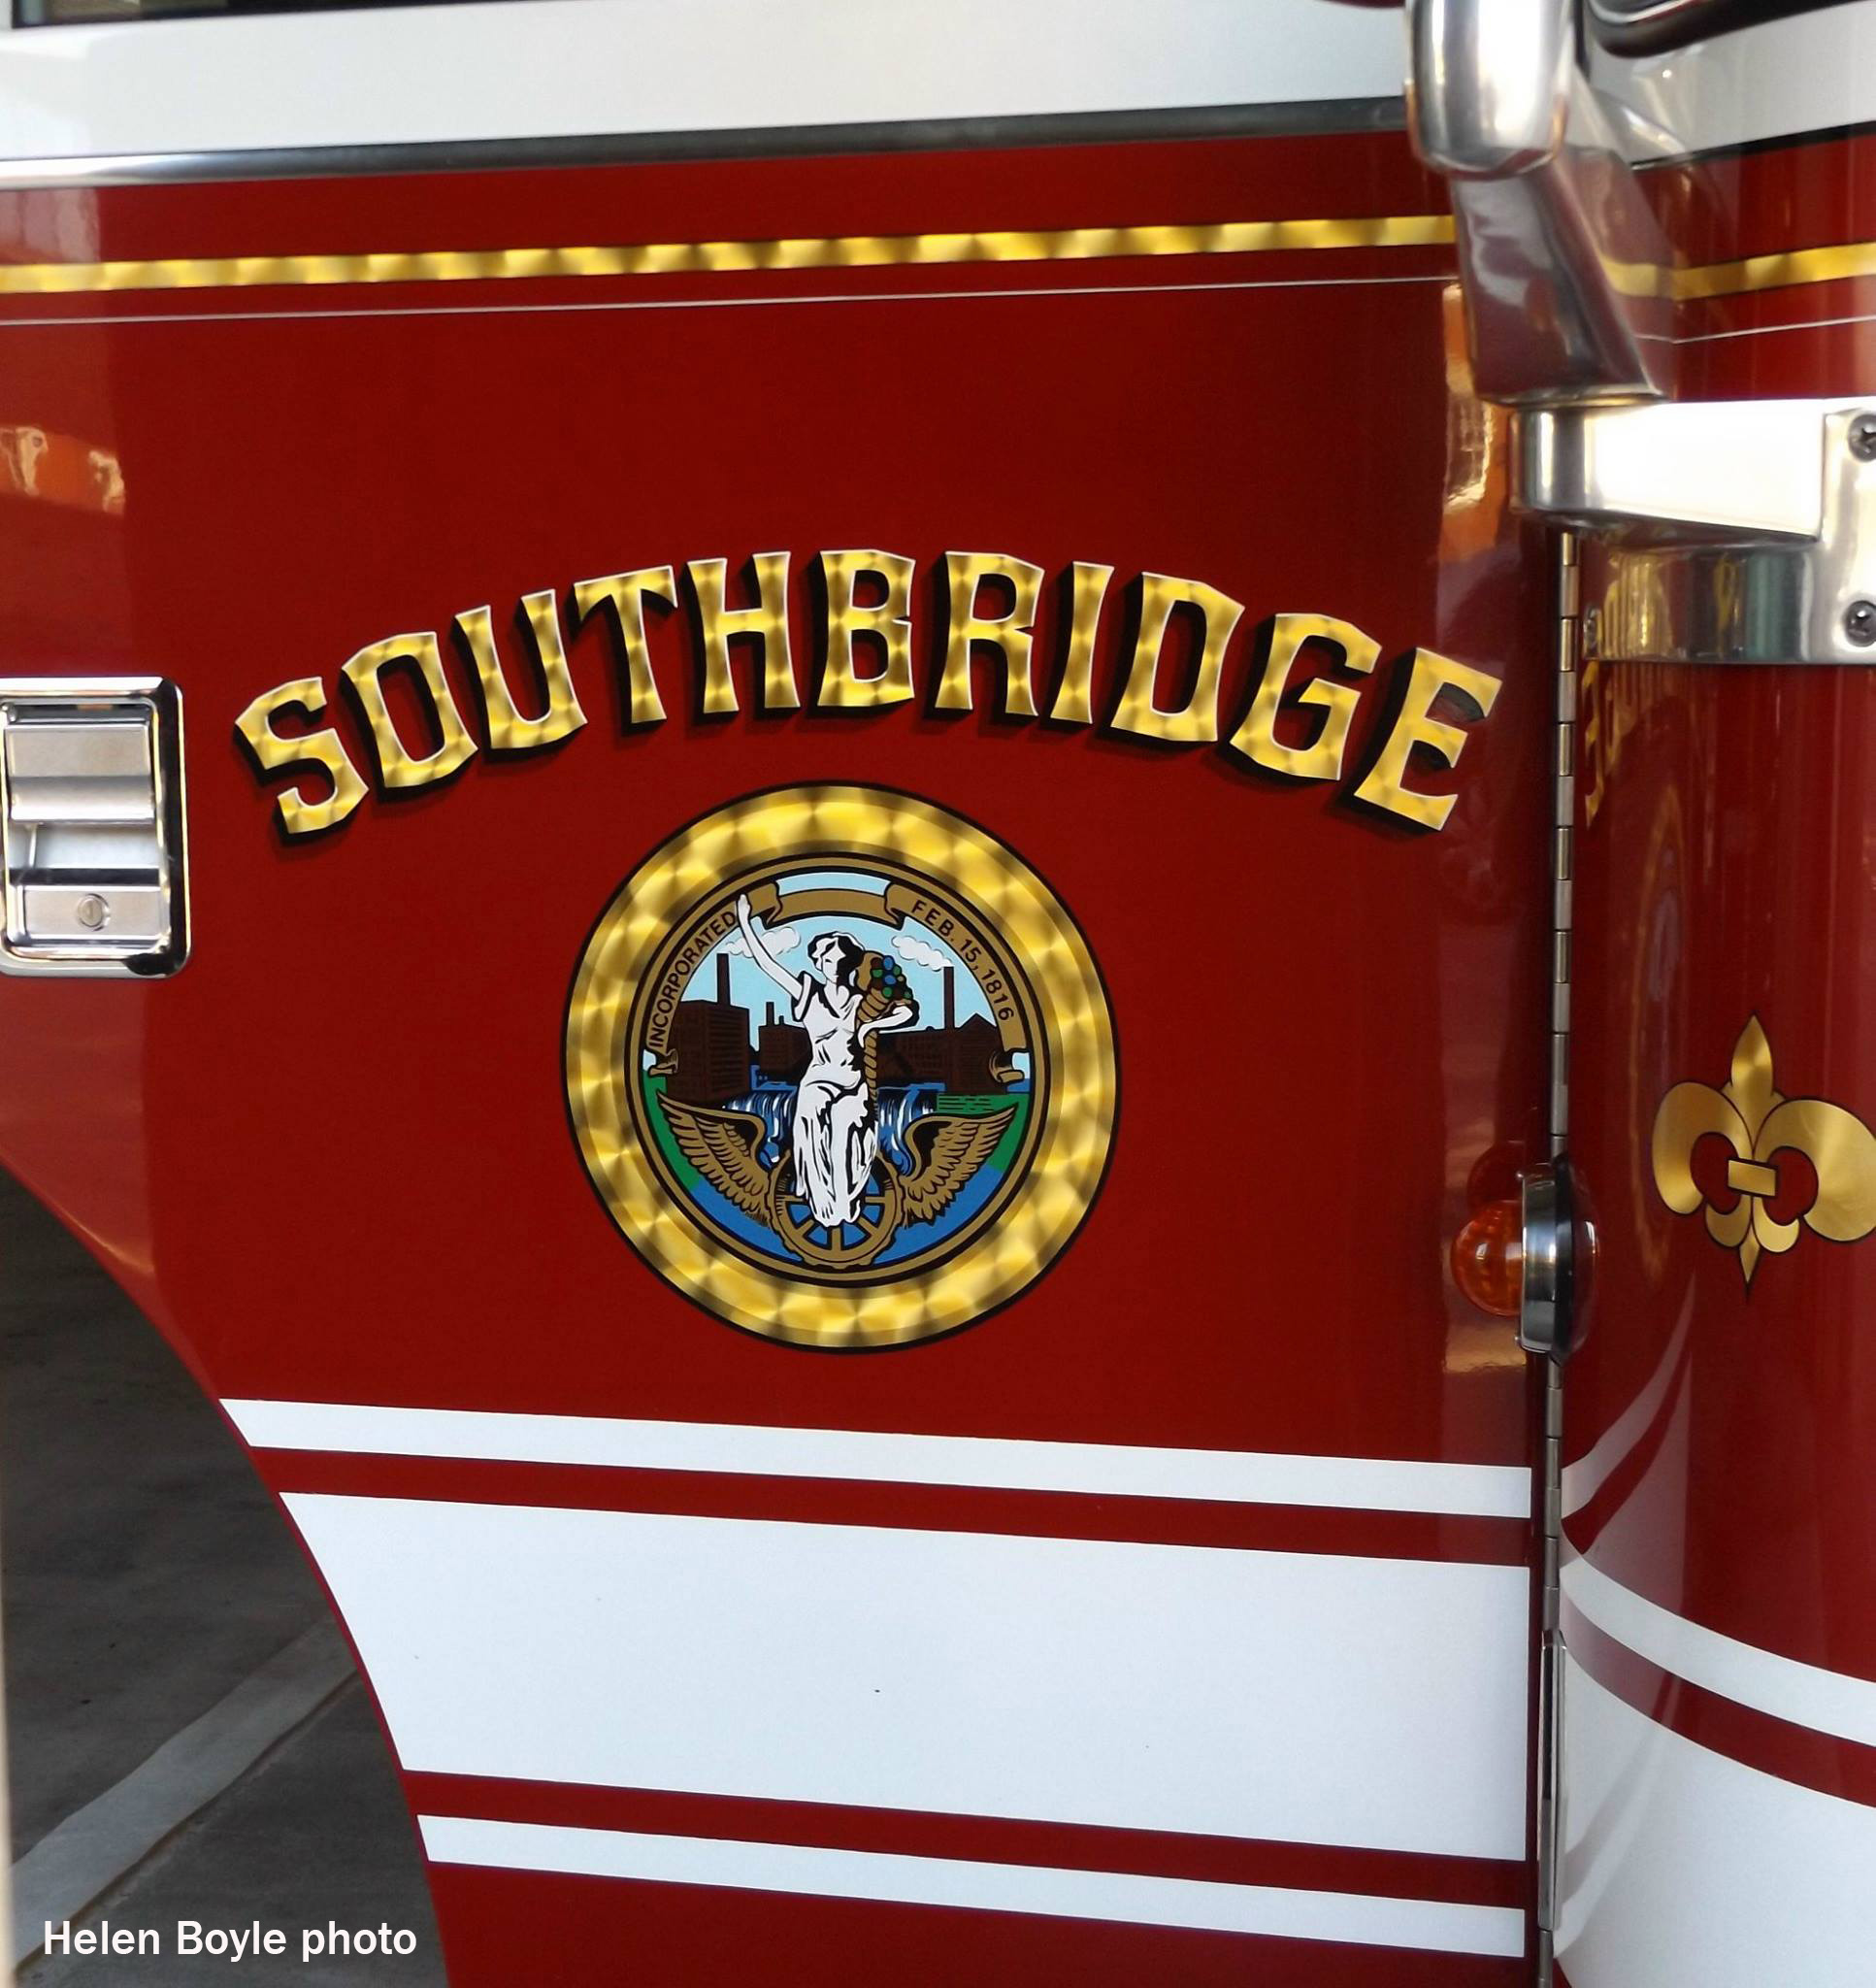 Four-year-old child drowns in Southbridge pool